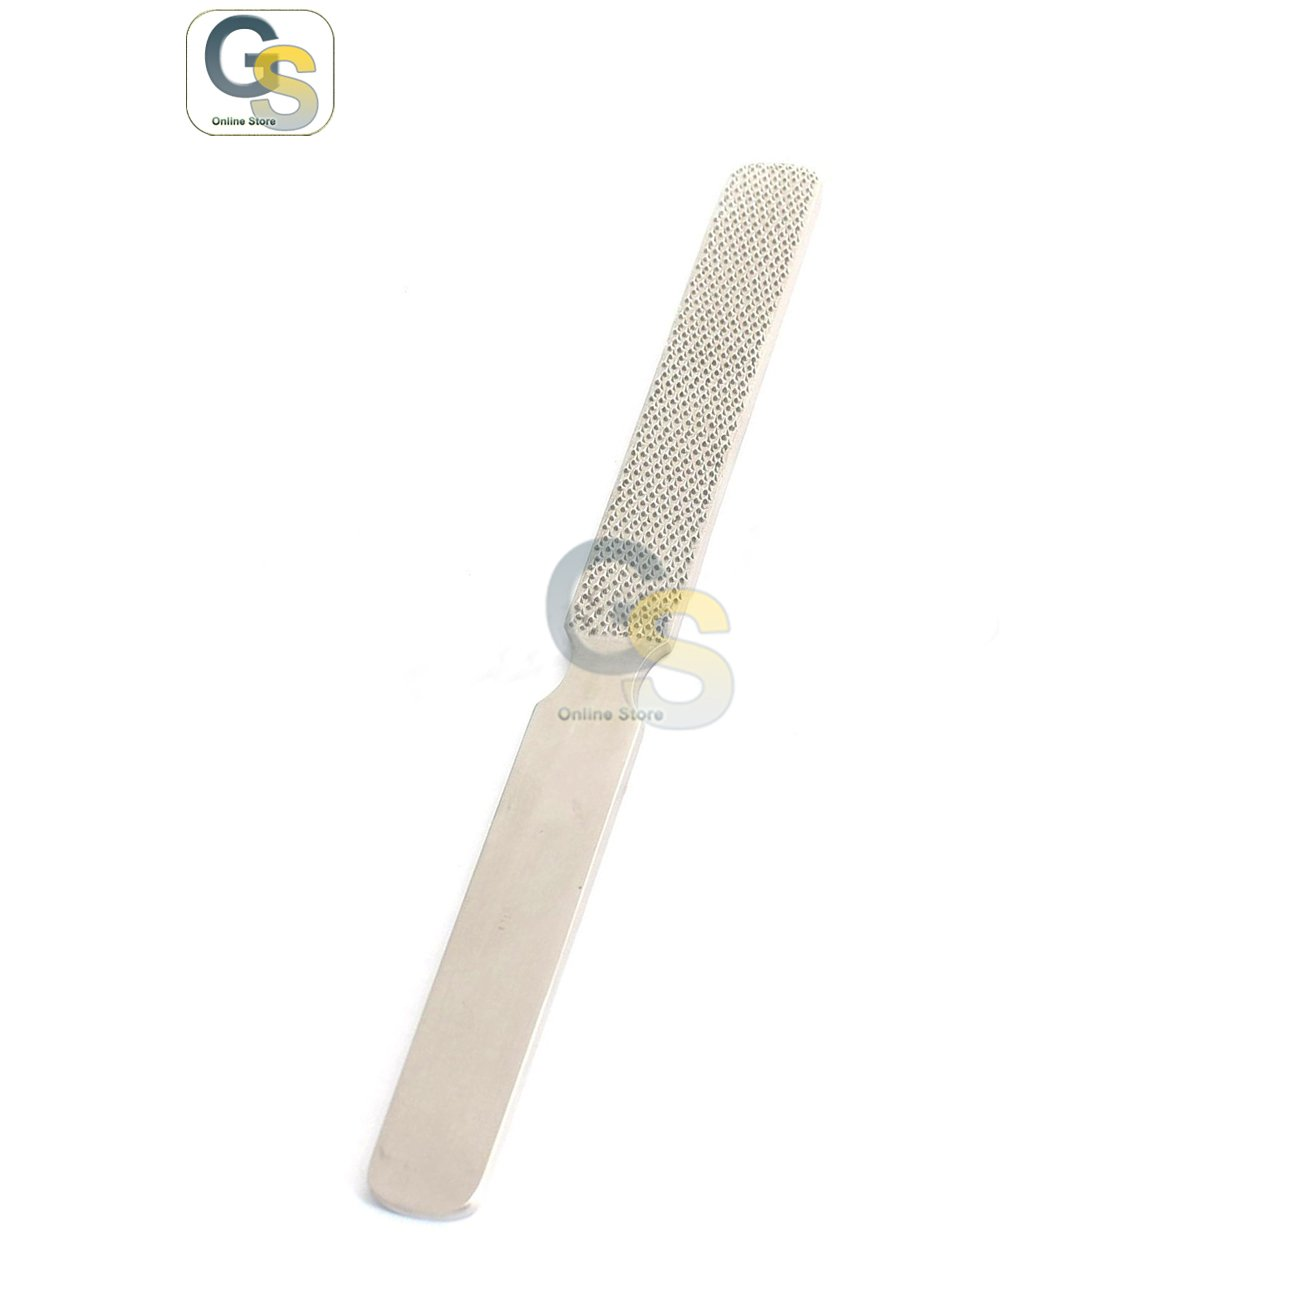 G.S ORTHOPEDIC BONE FILE AND RASP 20MM, 22CM